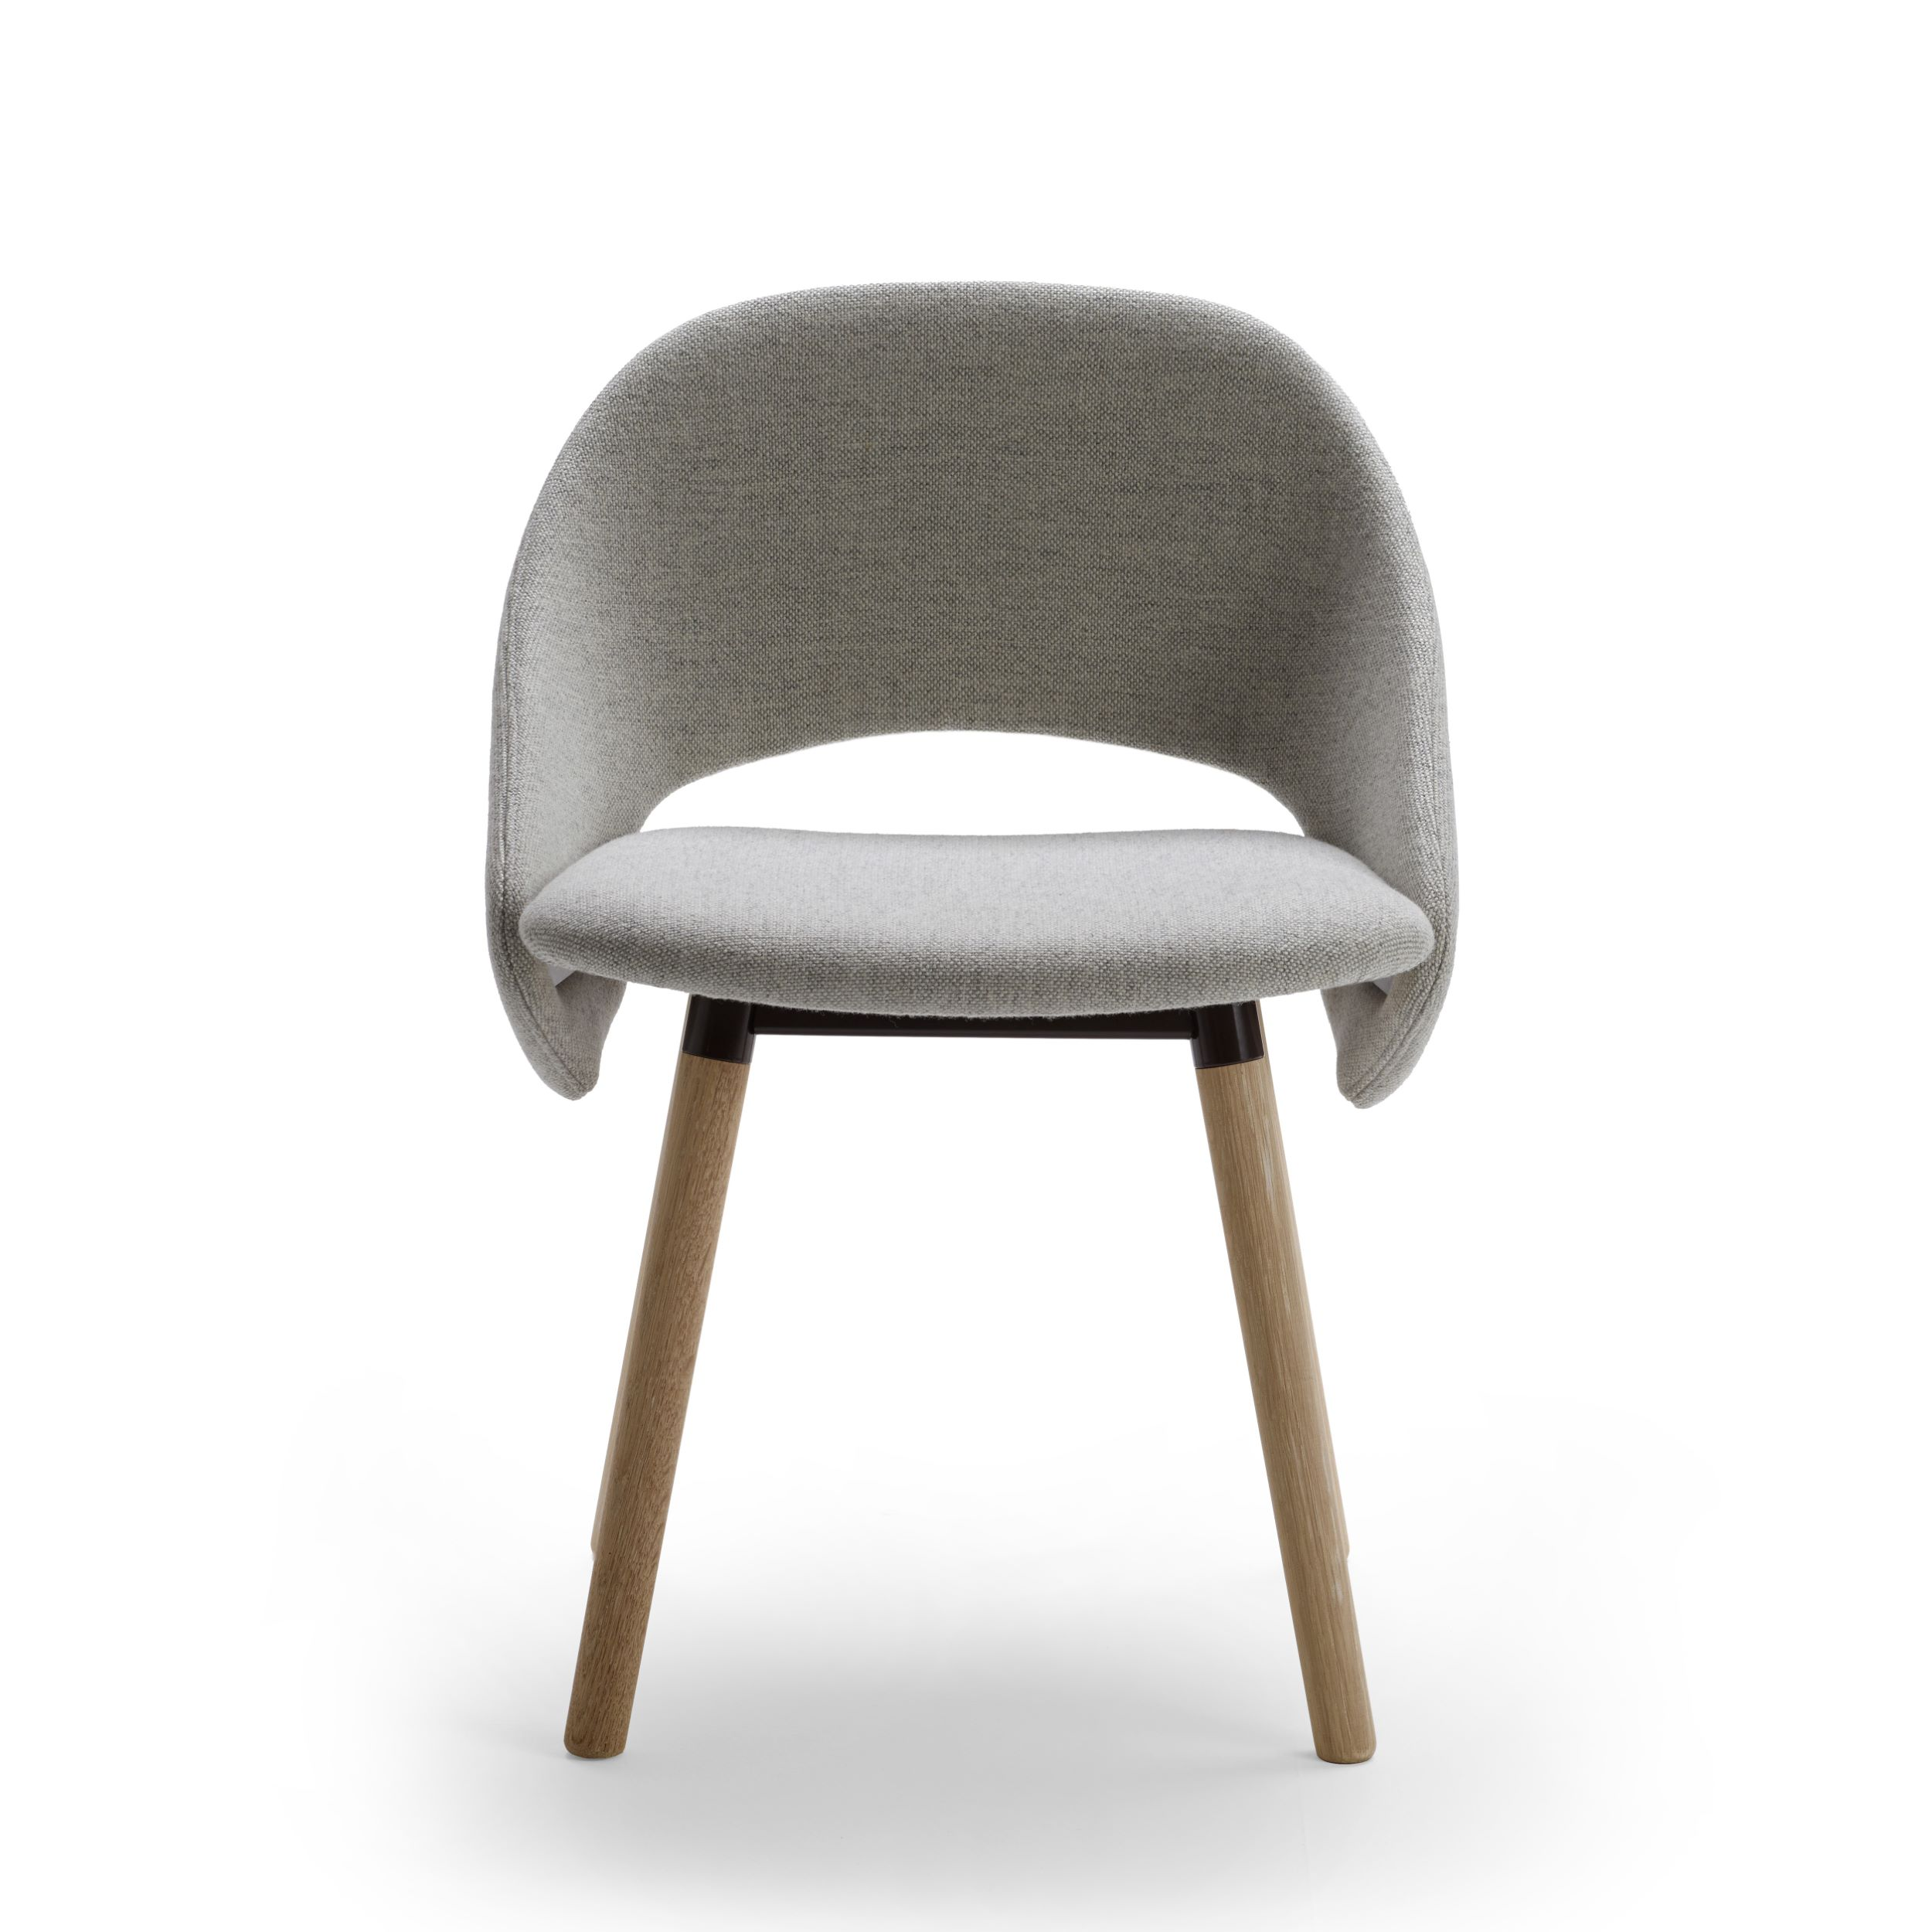 oslo posture chair review wheelchair uae tailor comfortable design by louise hederstrom offecct this iframe contains the logic required to handle ajax powered gravity forms